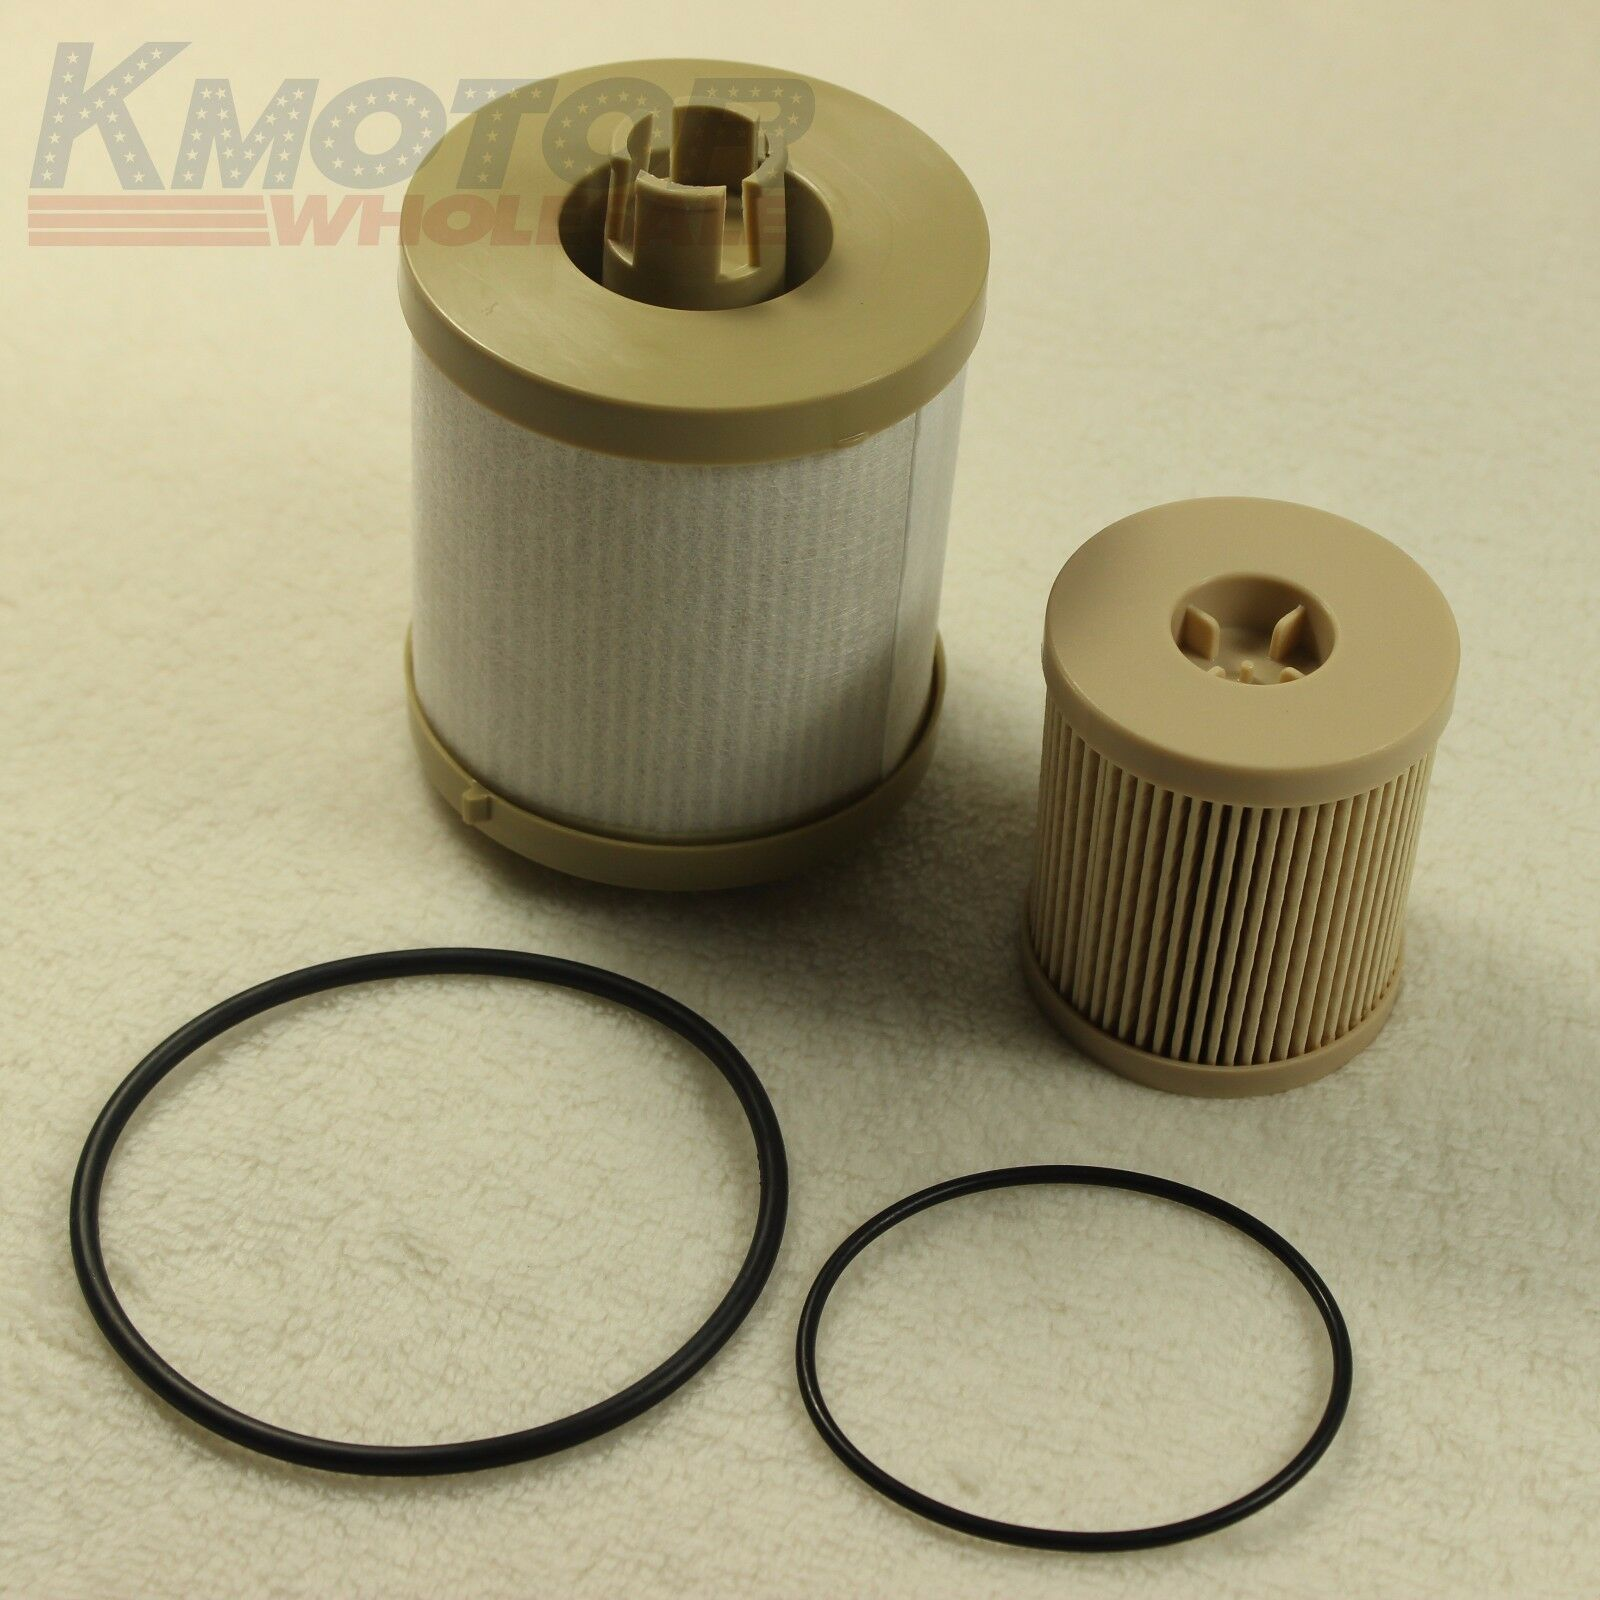 New Diesel Fuel Filter Fd4604 Fd4616 For Ford F250 F350 F450 60 Powerstroke 1 Of 10free Shipping